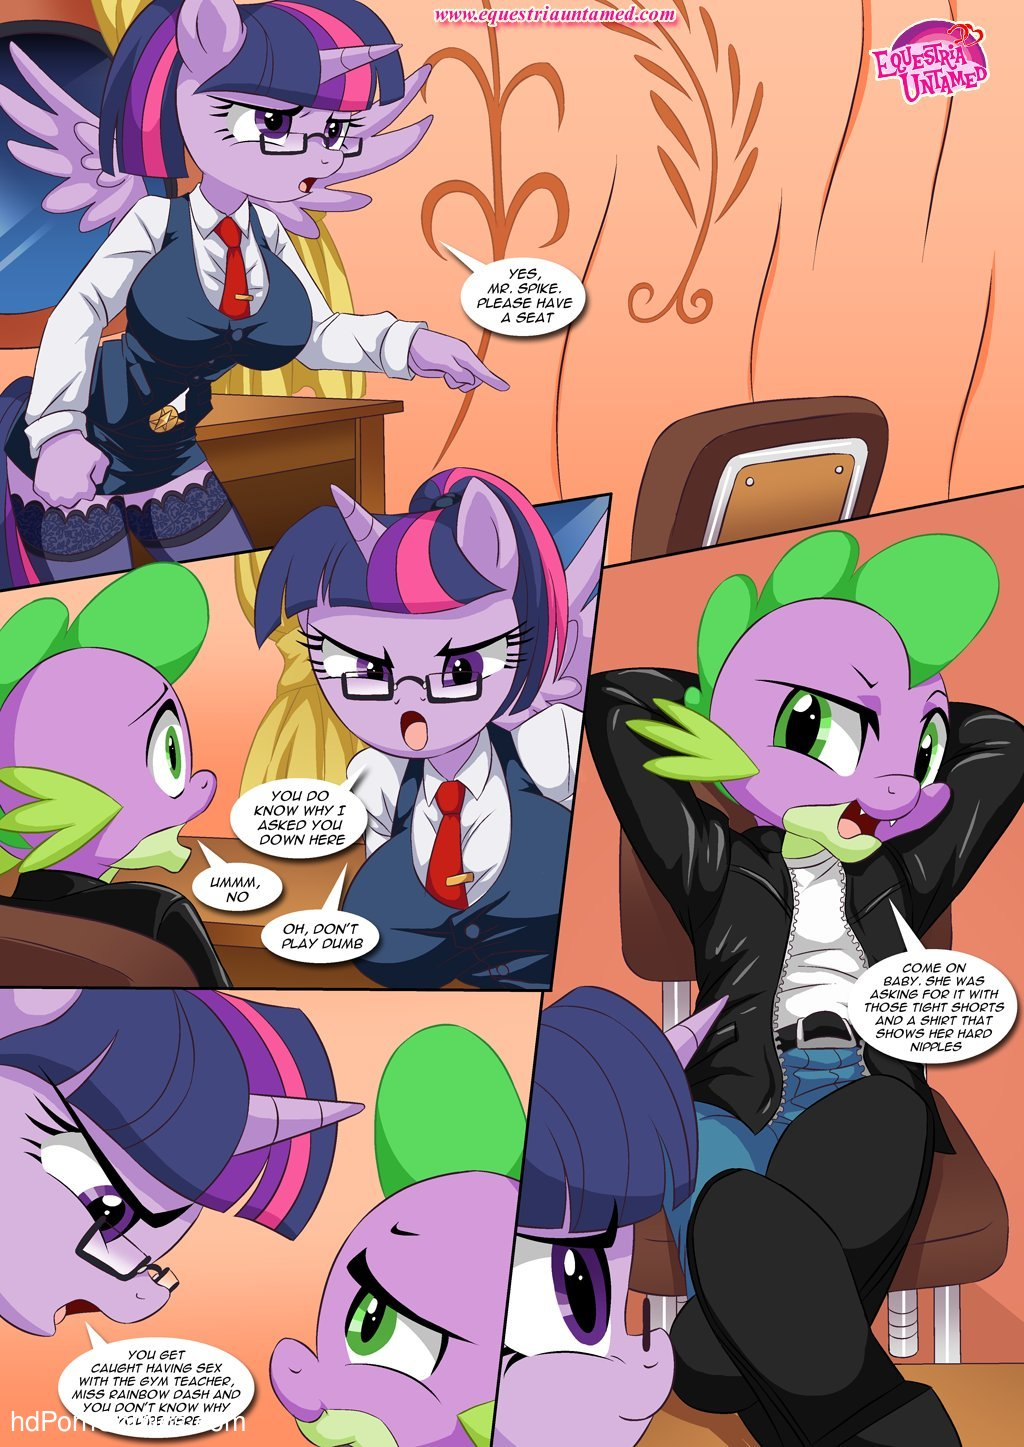 Sex Ed with Miss Twilight Sparkle (My Little Pony Friendship Is Magic) - Porncomics17 free sex comic